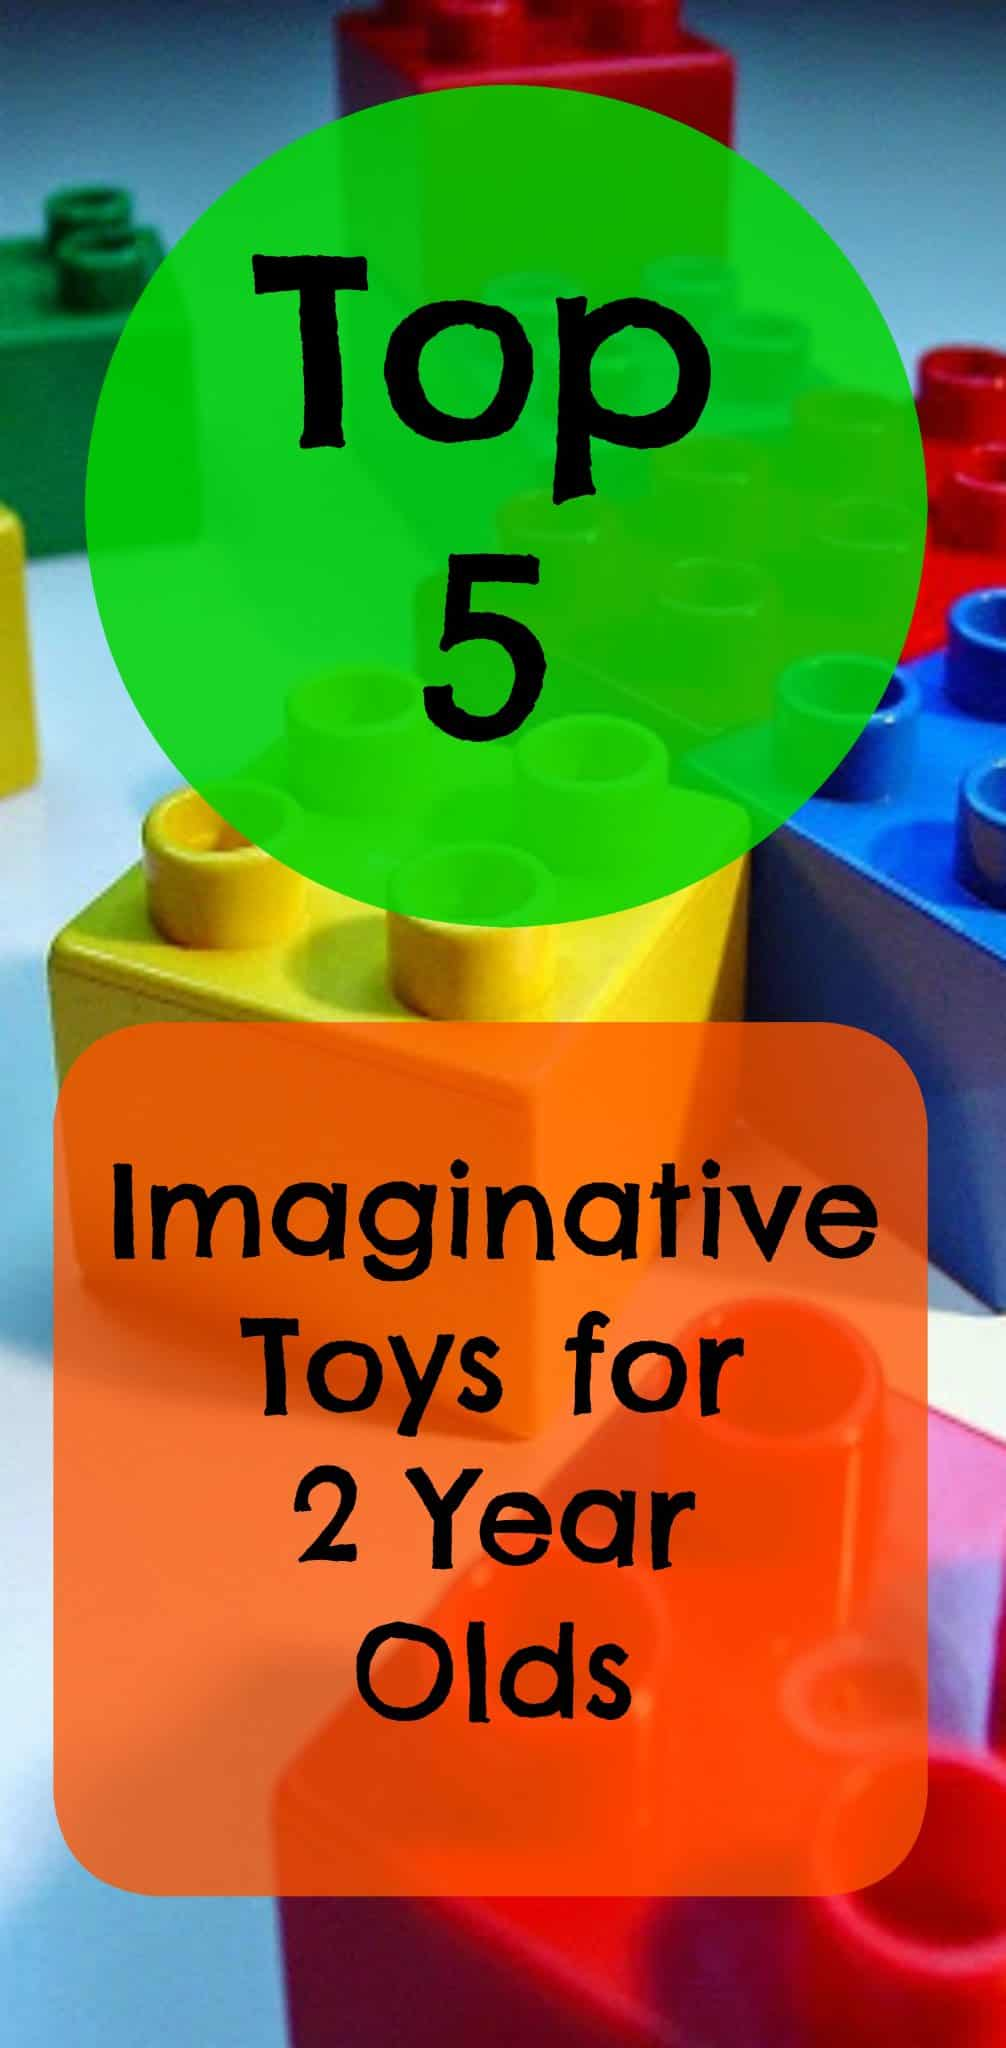 Imaginative Play Toys for Children 2 to 8 Year Olds | Kims Home Ideas